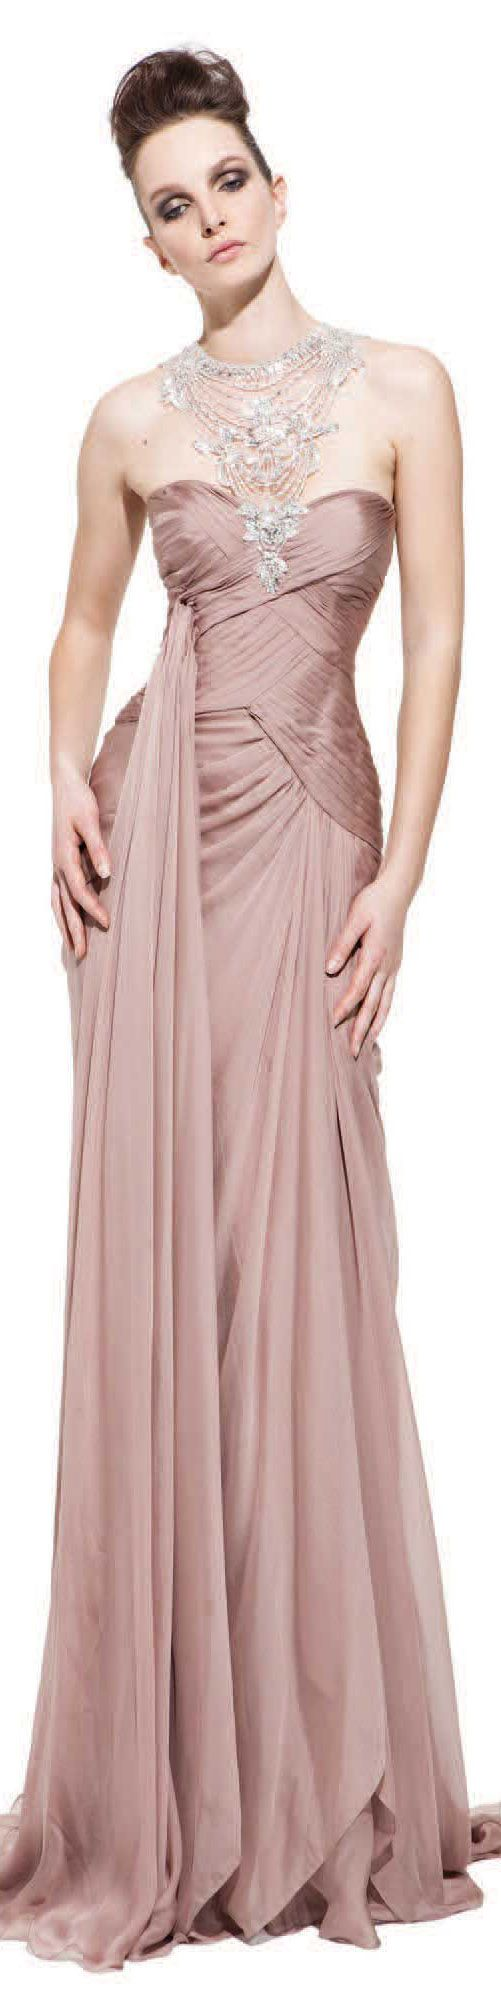 PAVONI Collection - Fall/Winter 2012 #long #dress | vestidos ...